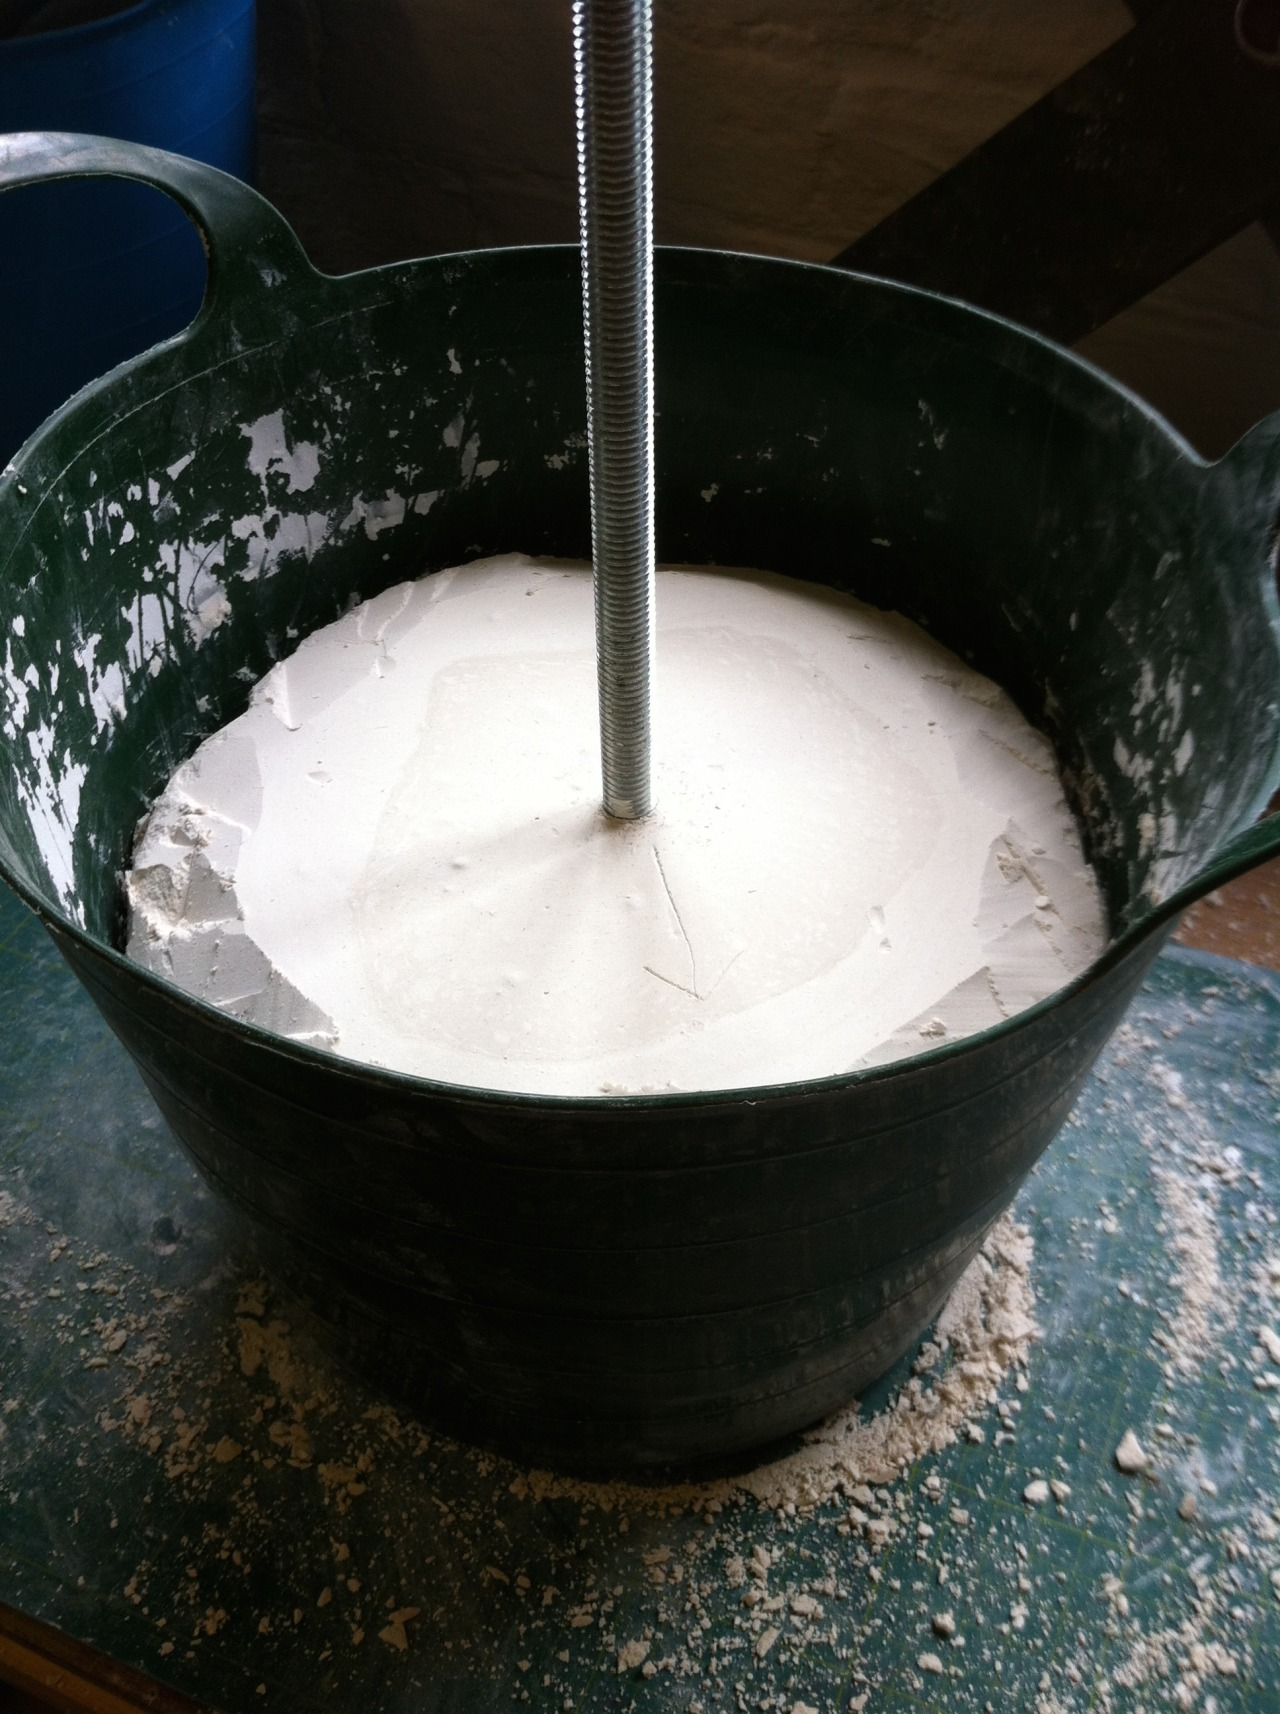 The stuck plaster block, part of my failed experiment to cast investment plaster in a rubber bucket.